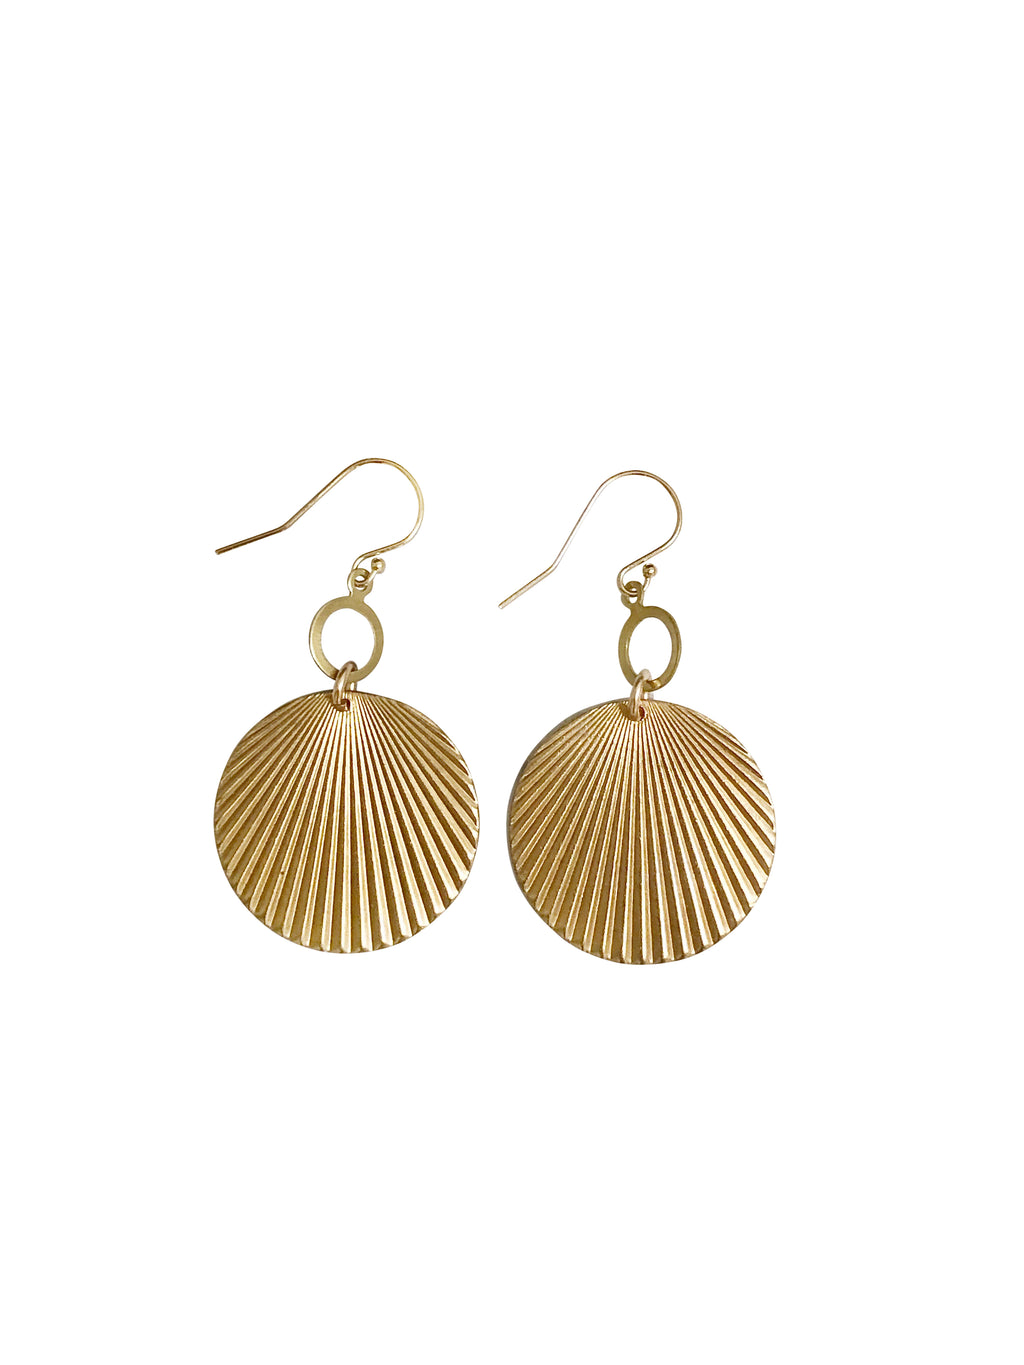 earrings oorbellen sieraden jewelry messing statement goldcoloured